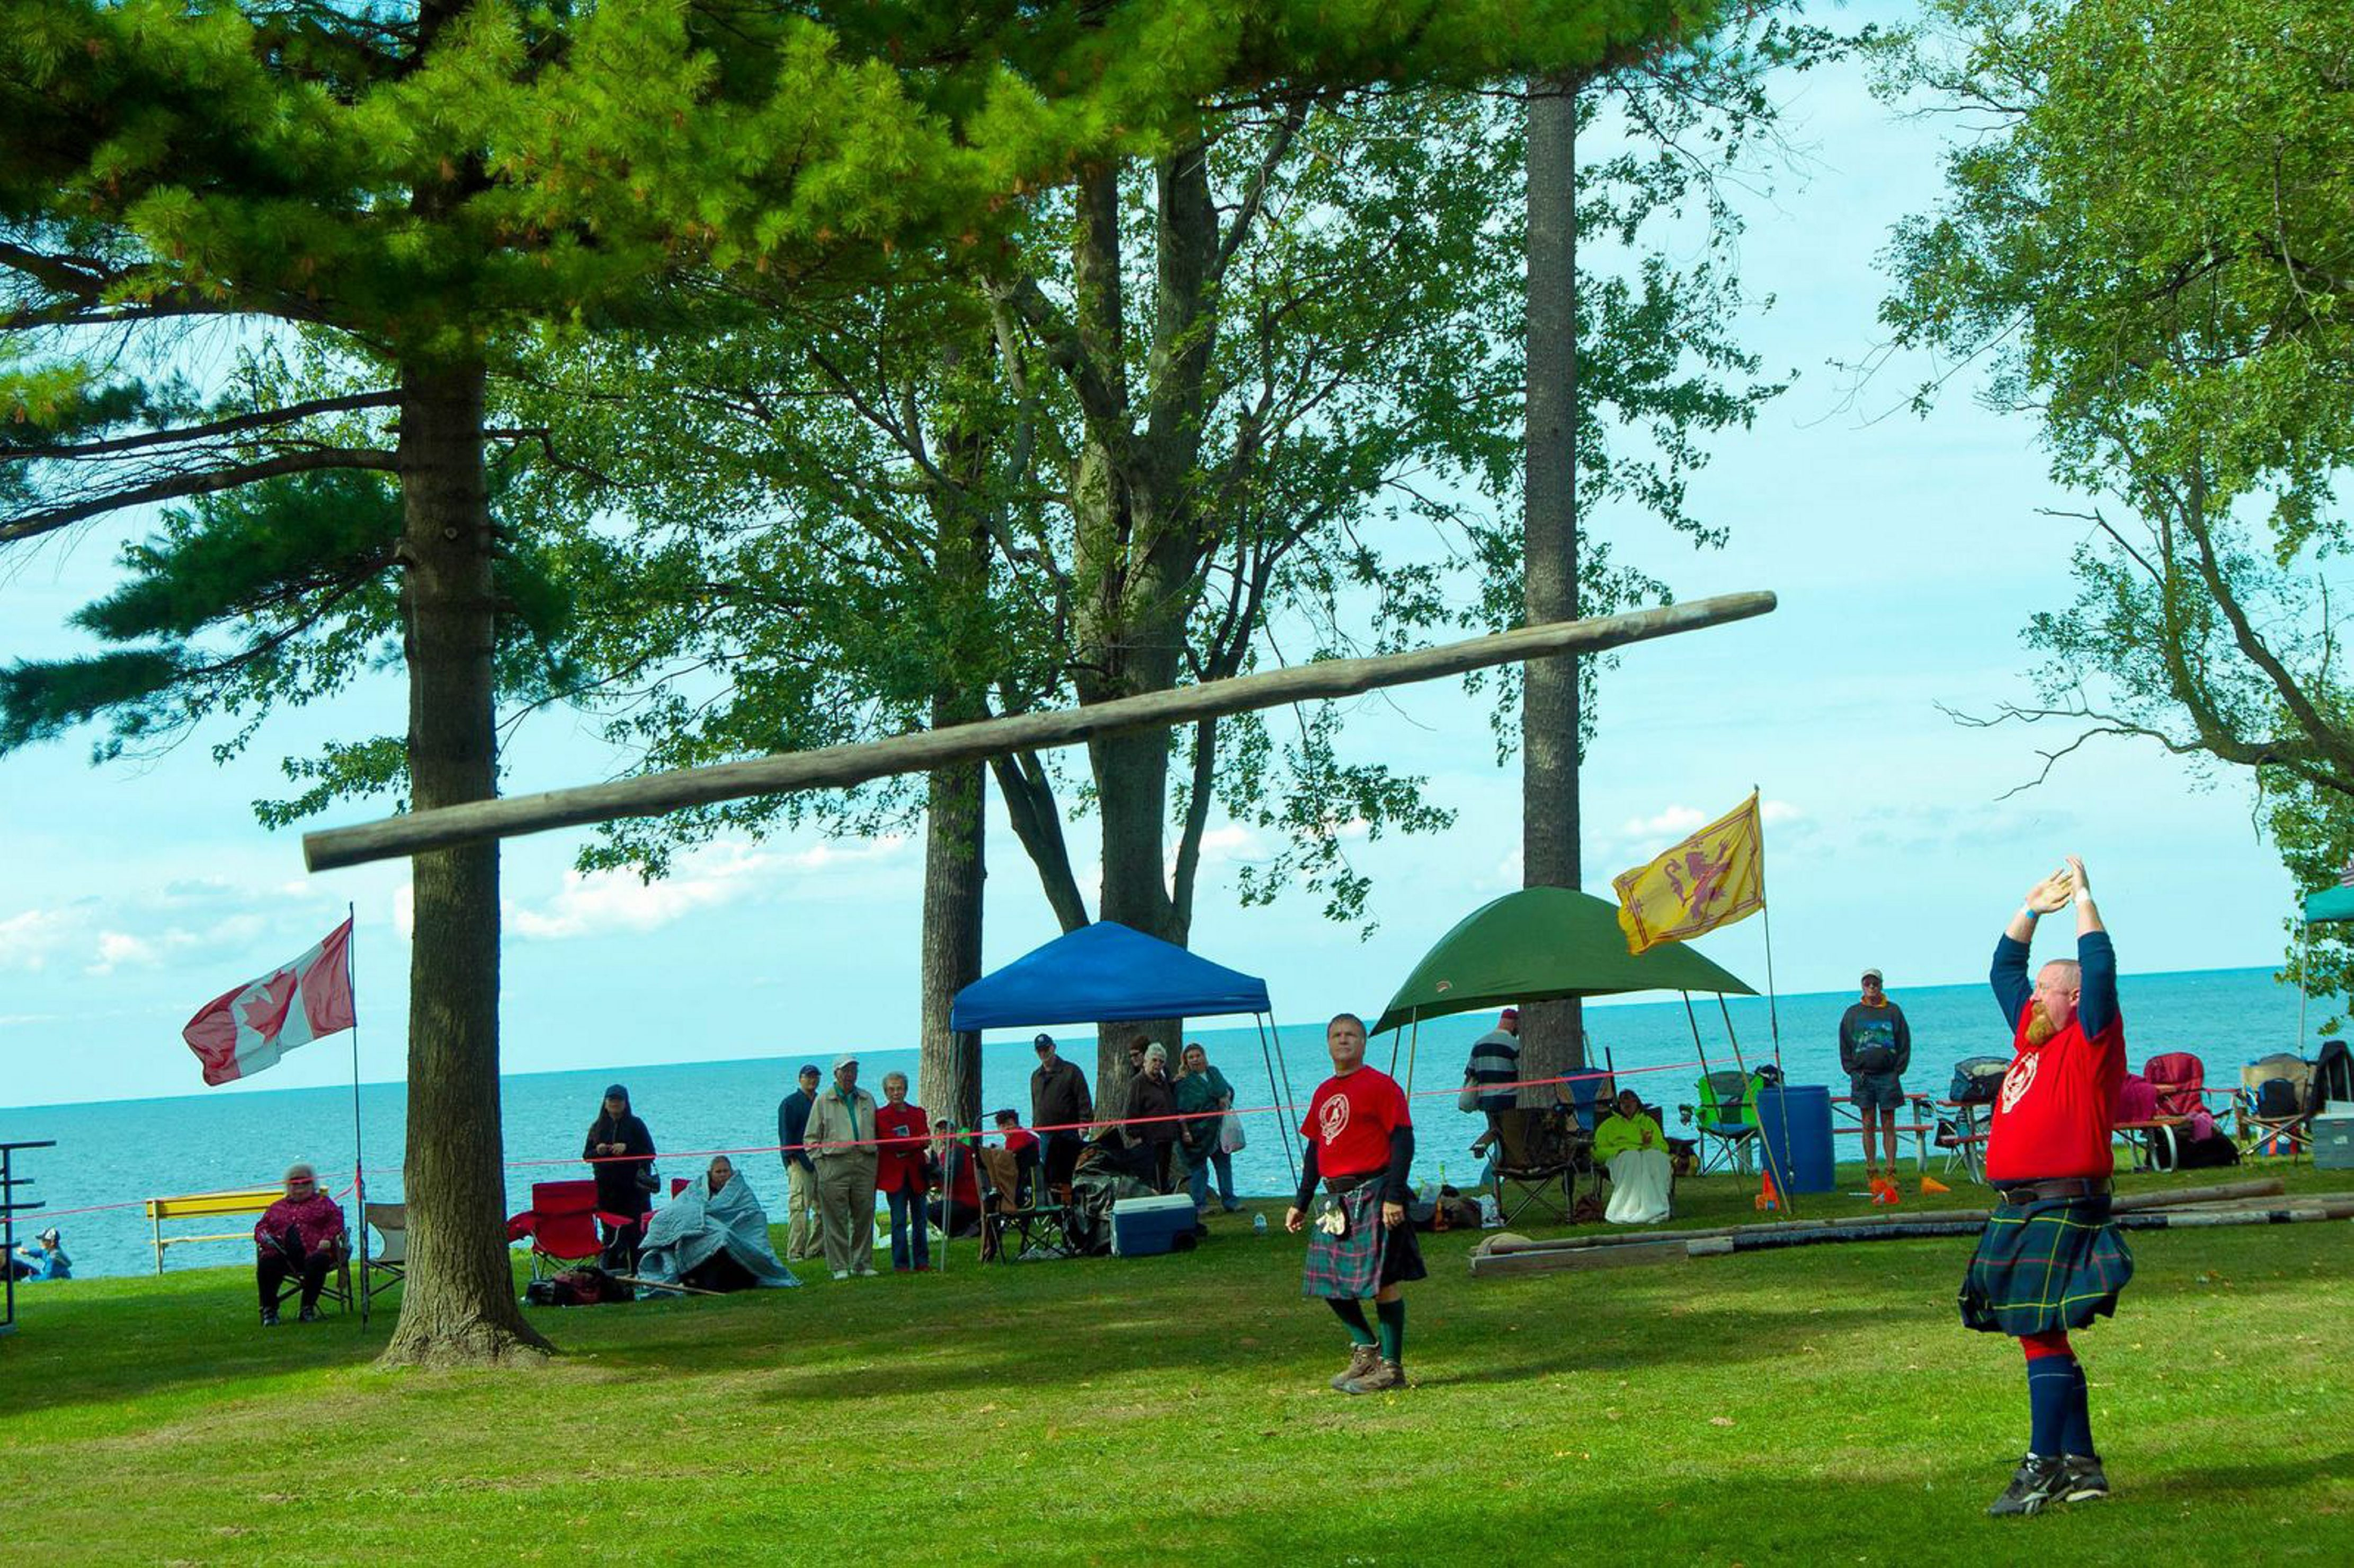 This scene, and many others, will be repeated in Krull Park during the Niagara Celtic Heritage Festival.